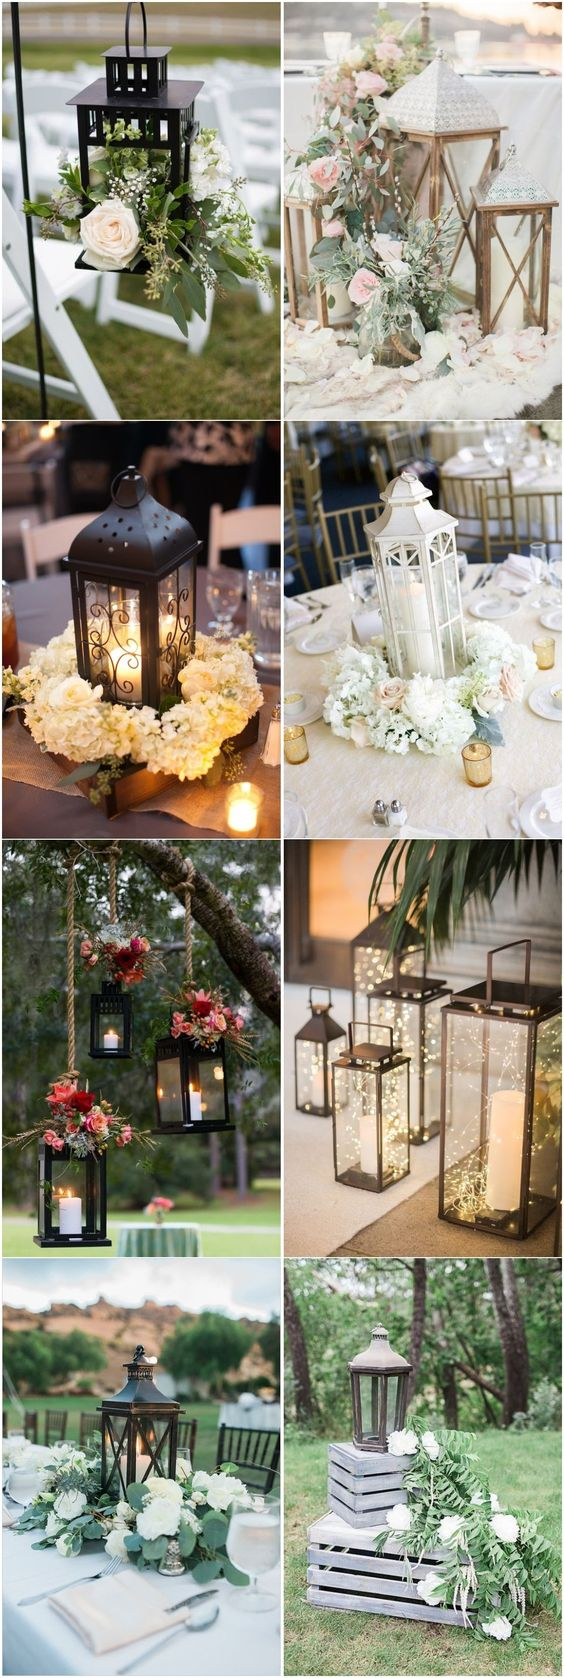 Lantern Wedding Decoration Ideas